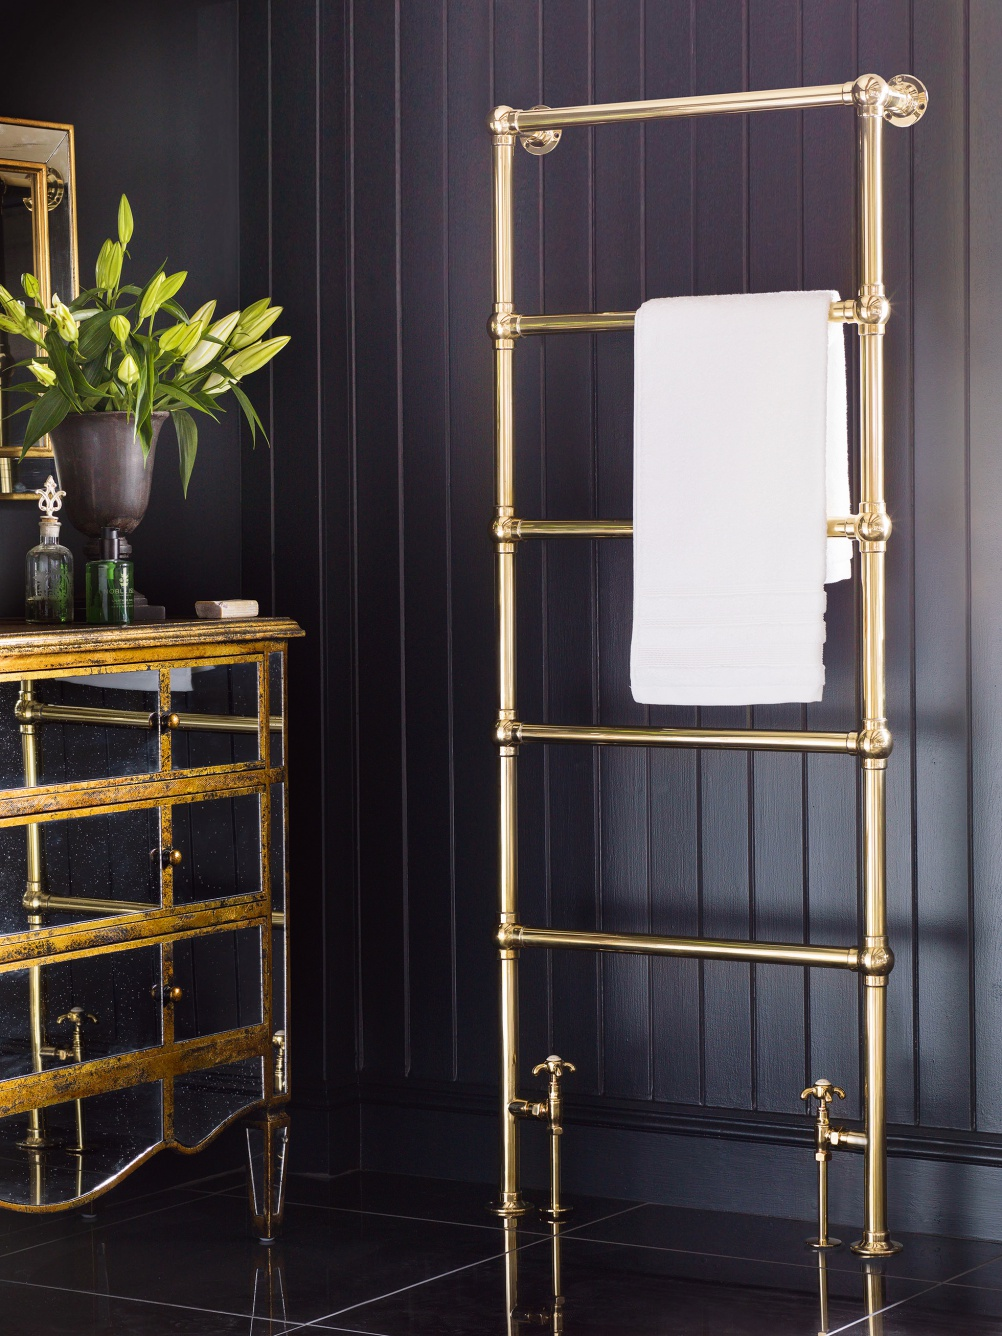 Heated towel rail from Catchpole & Rye